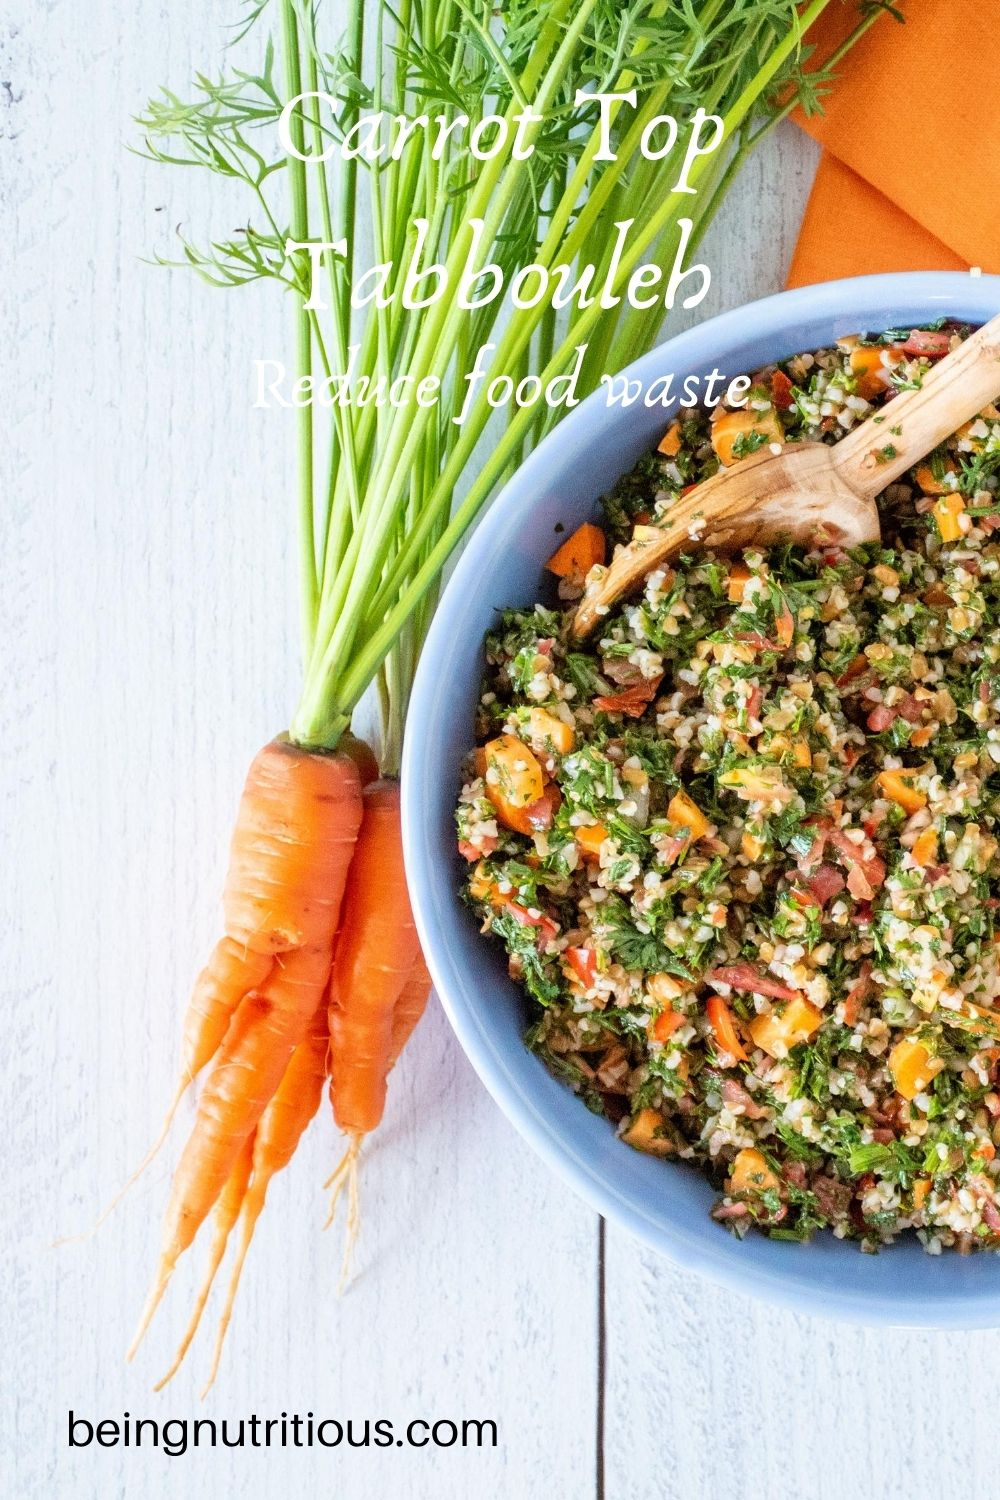 Overhead shot of carrot top tabbouleh in a blue bowl, half of the bowl shown, with a bunch of carrots with the tops still attached lying beside the bowl. Text overlay: Carrot Top Tabbouleh; Reduce food waste.